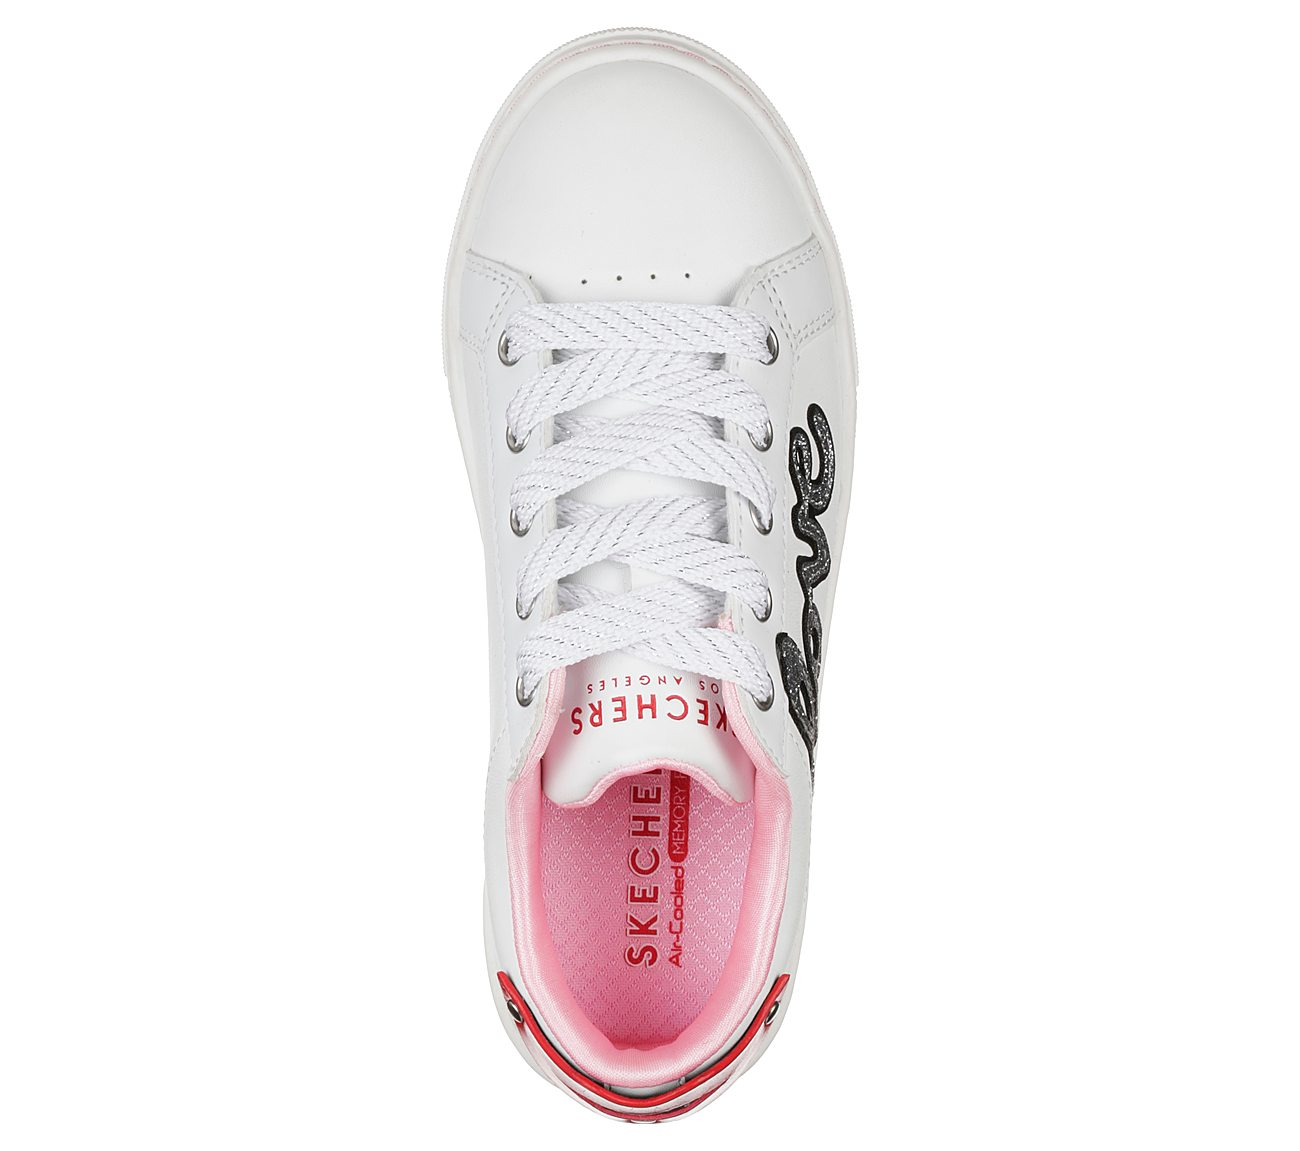 Sealed With A Kiss SKECHER Street Shoes